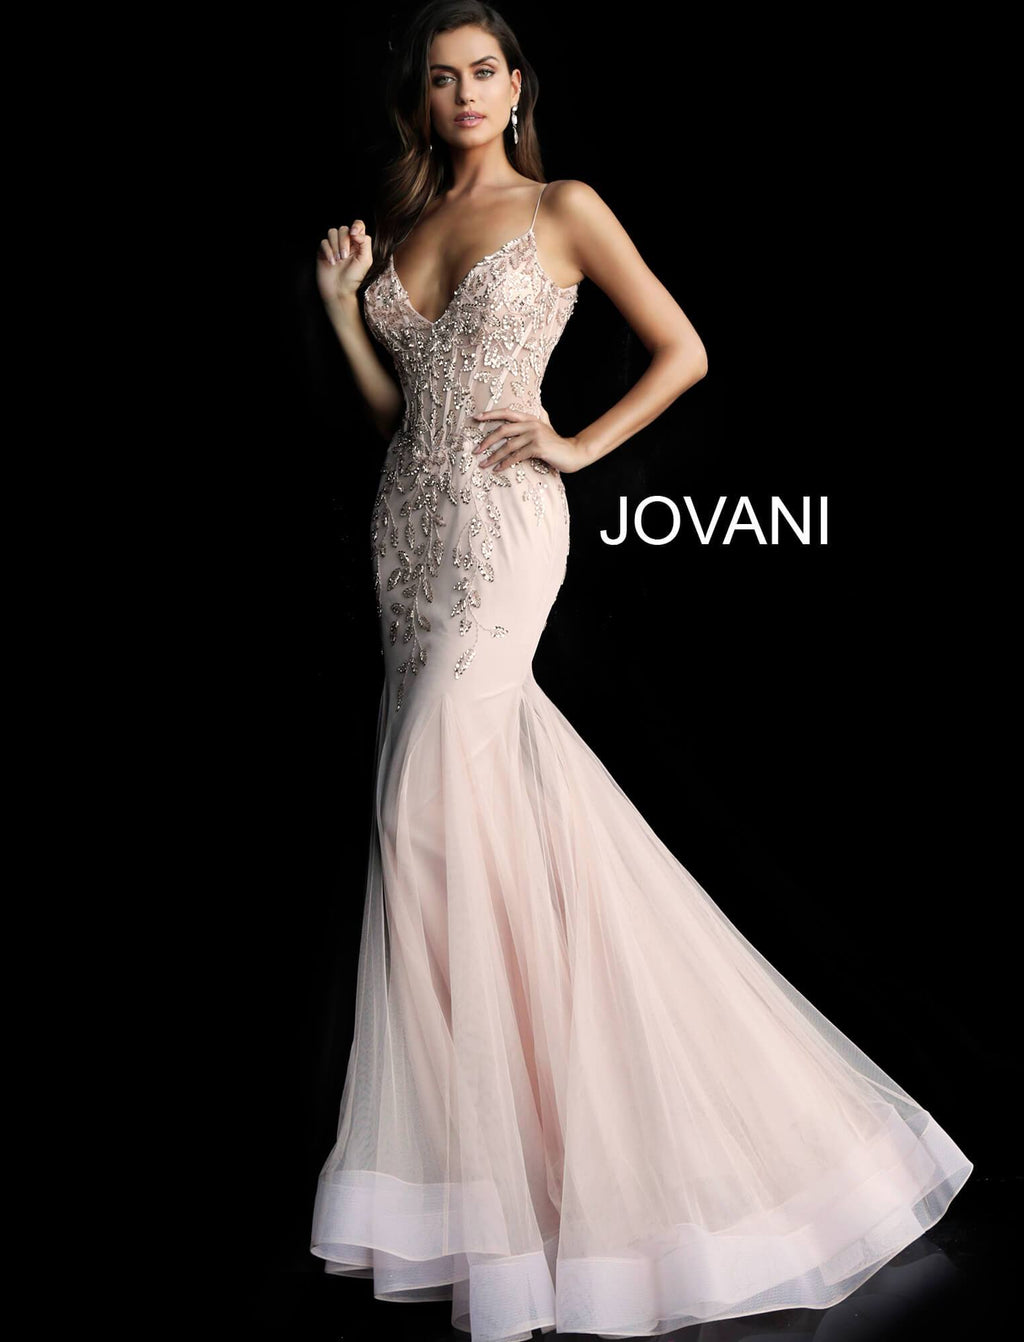 Jovani Blush Embellished Mermaid Gown